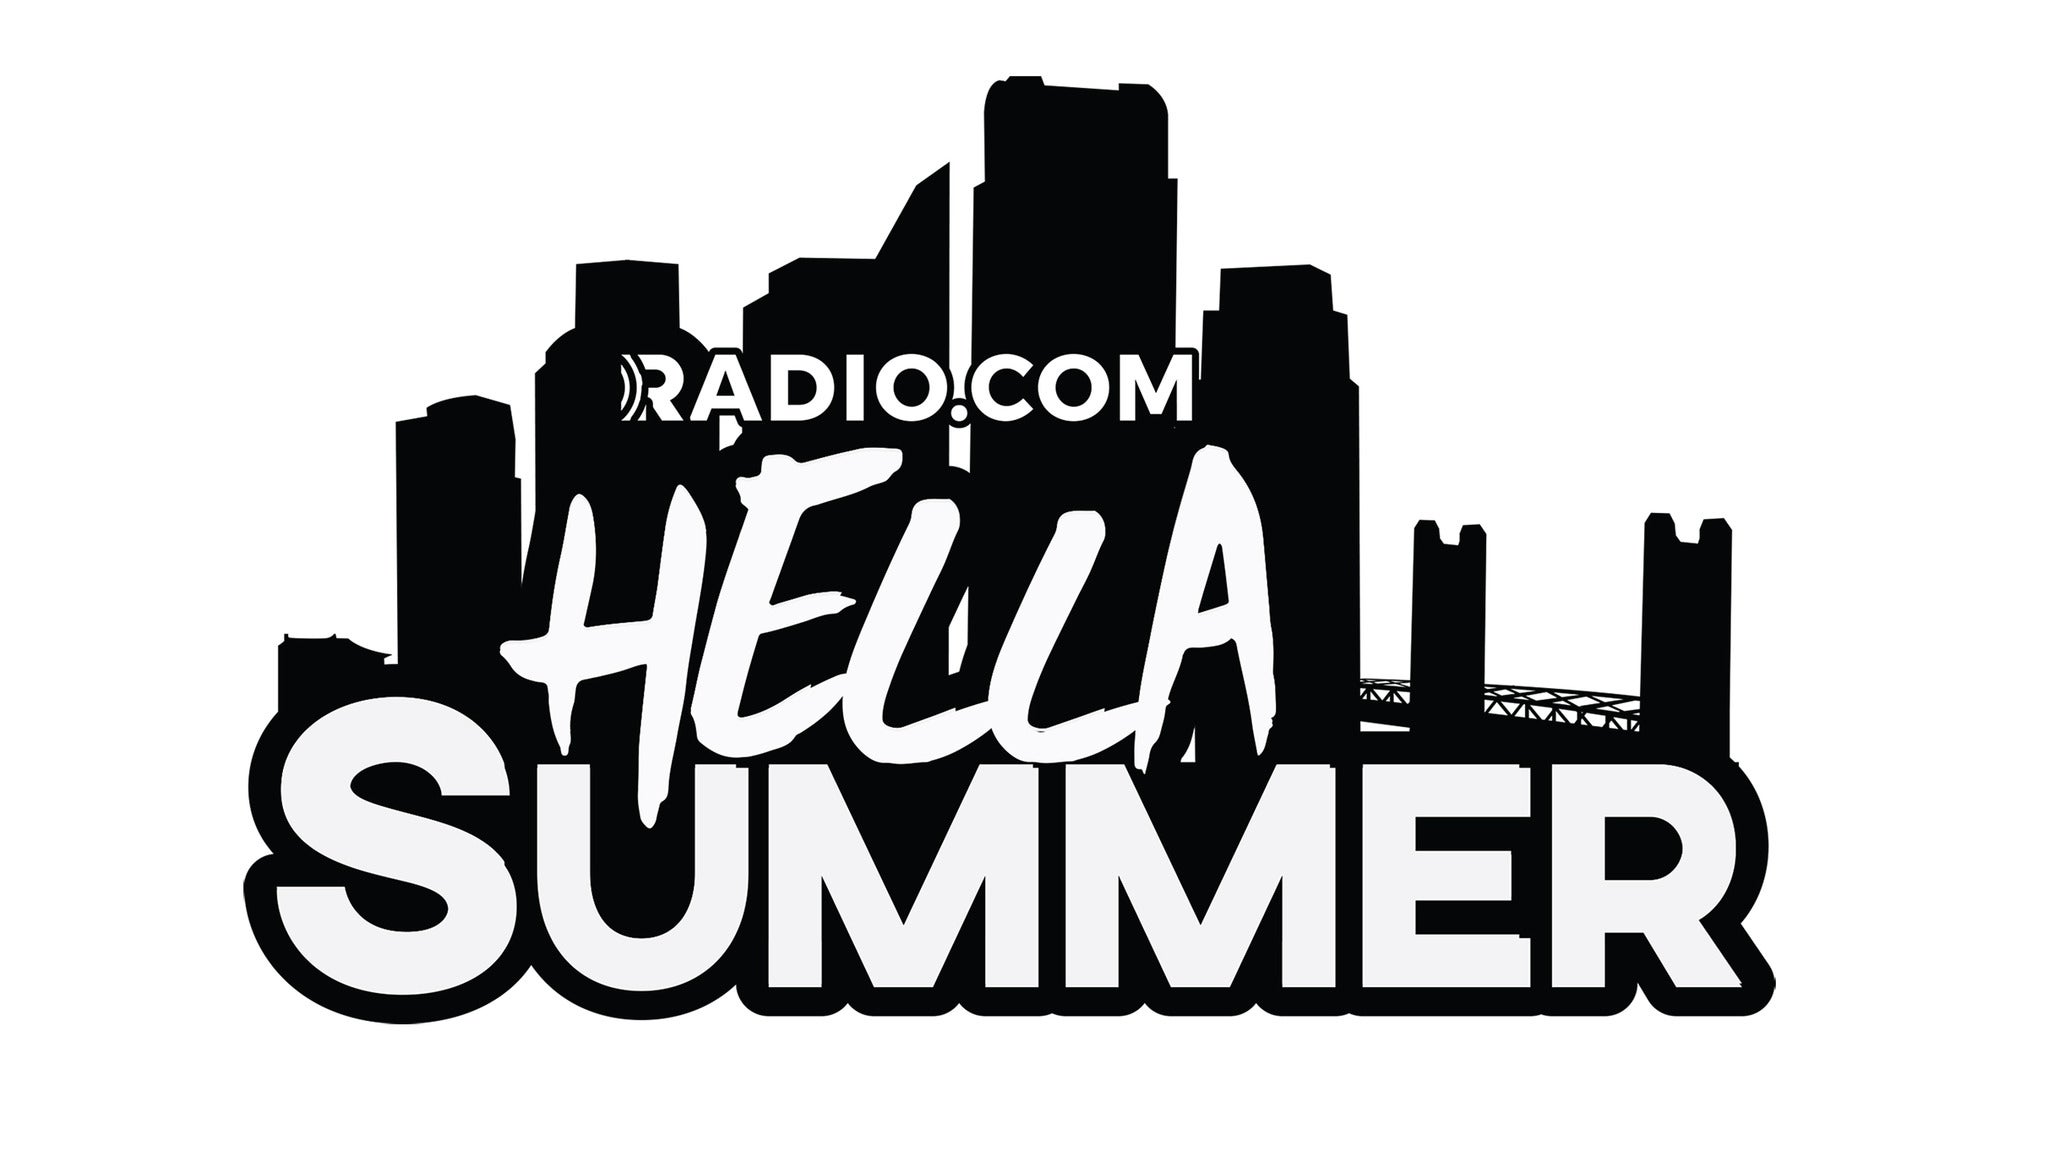 KSFM Presents Hella Summer Show at Golden 1 Center